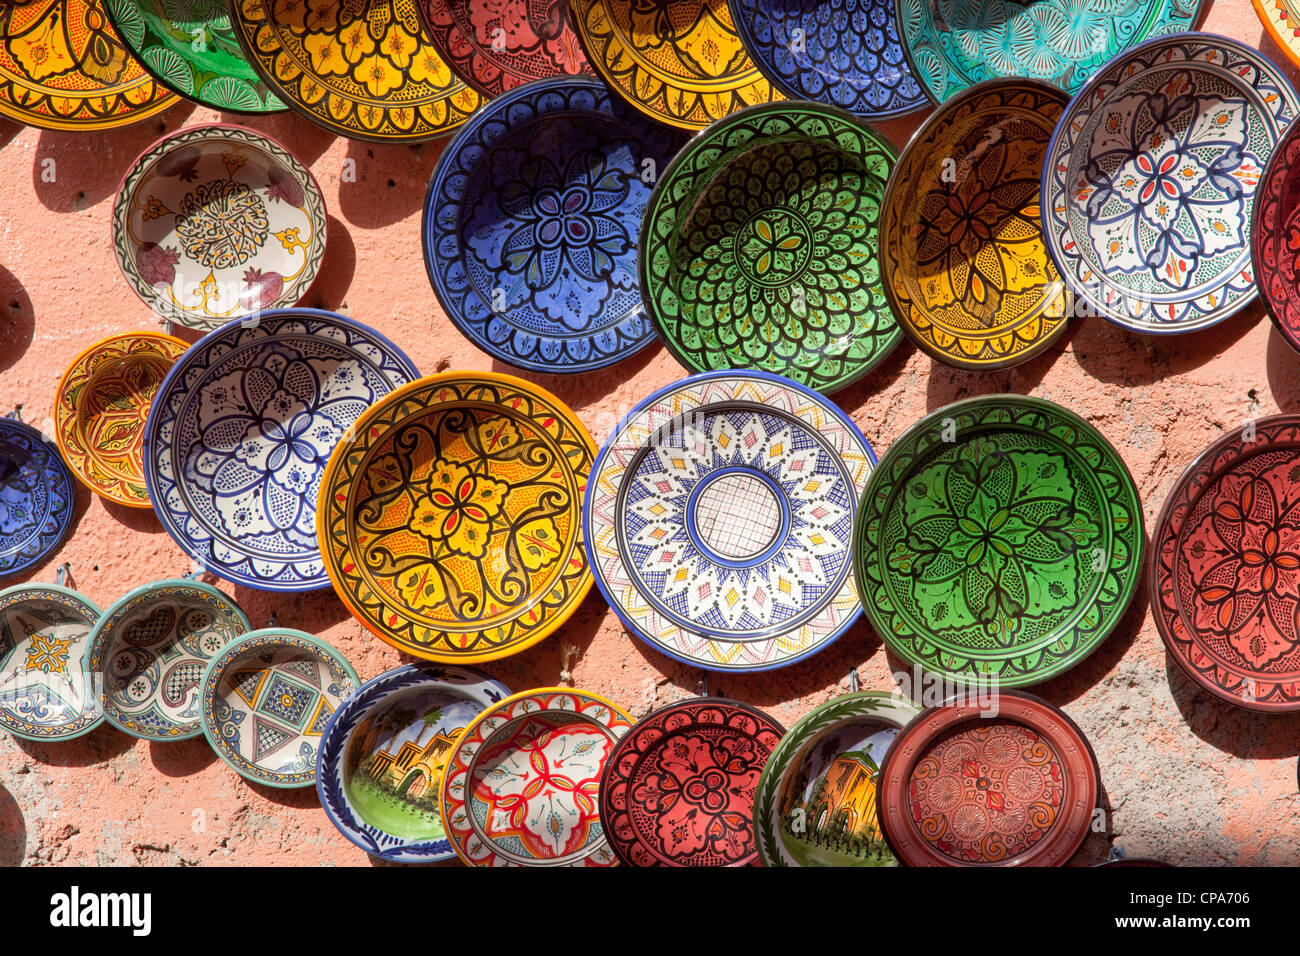 Selection Of Colourful Moroccan Plates On A Wall In Marrakech Stock Photo Alamy